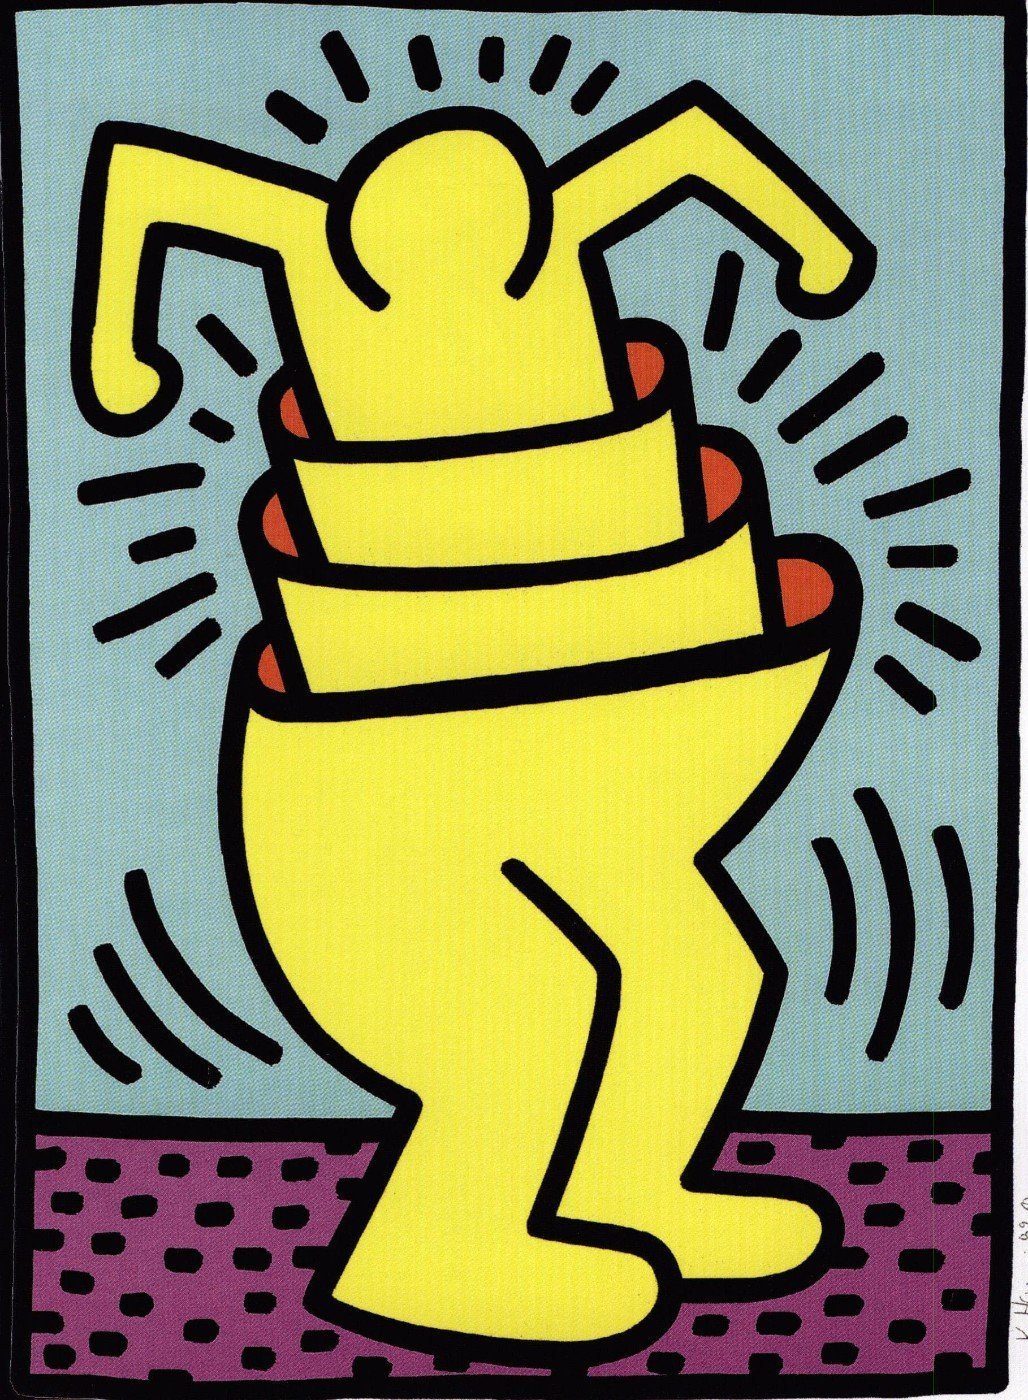 Puzzle - Art Prints by Keith Haring   Buy Posters, Frames, Canvas ...